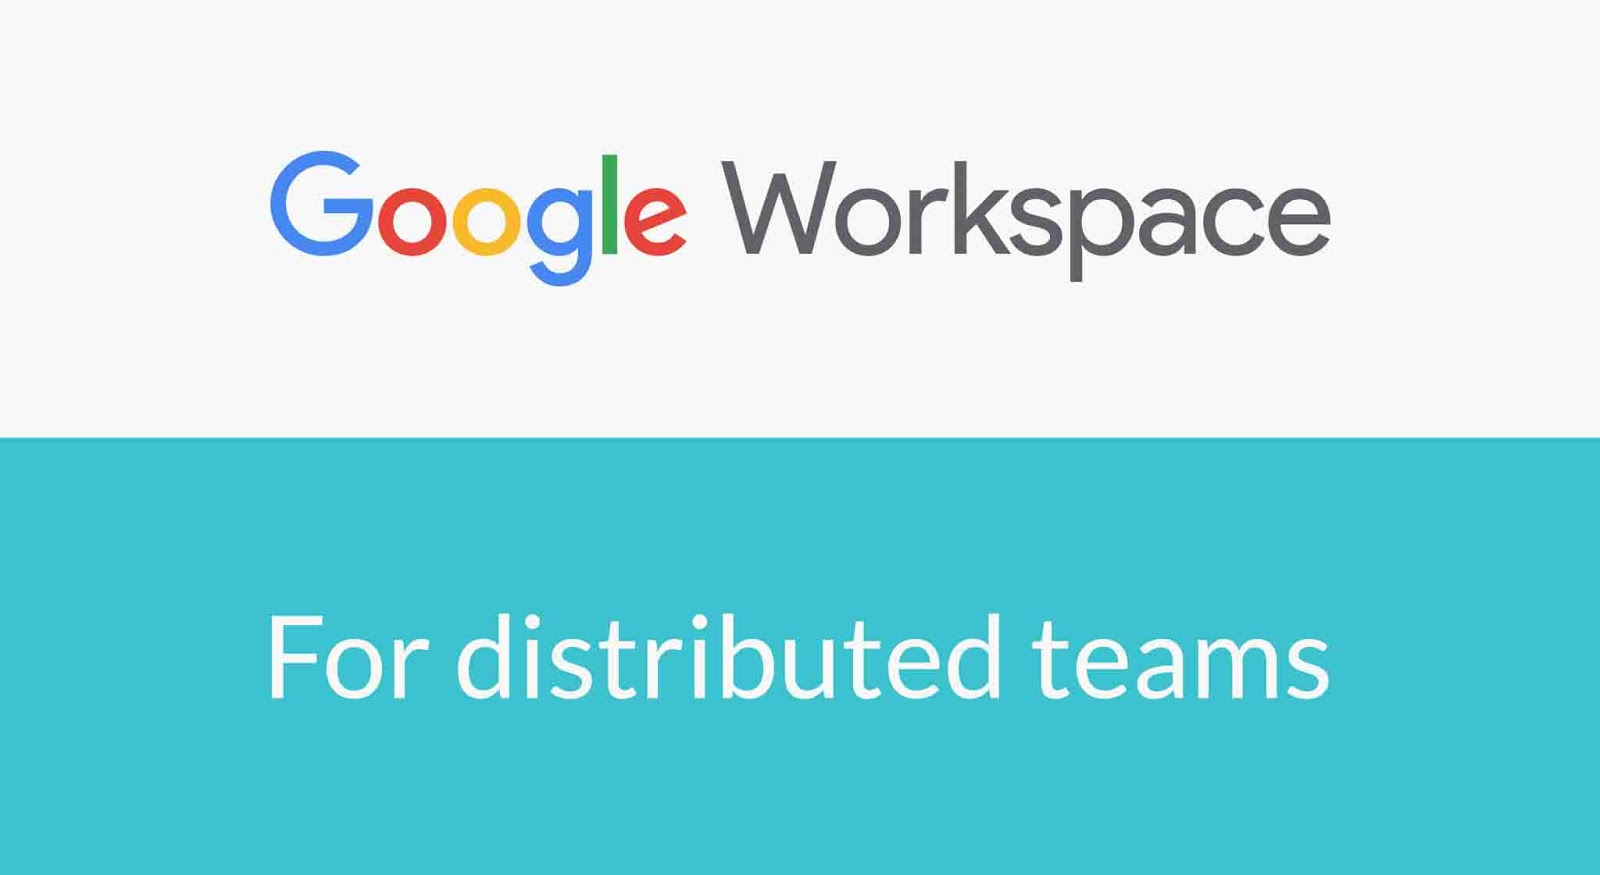 Google Workspace for distributed teams